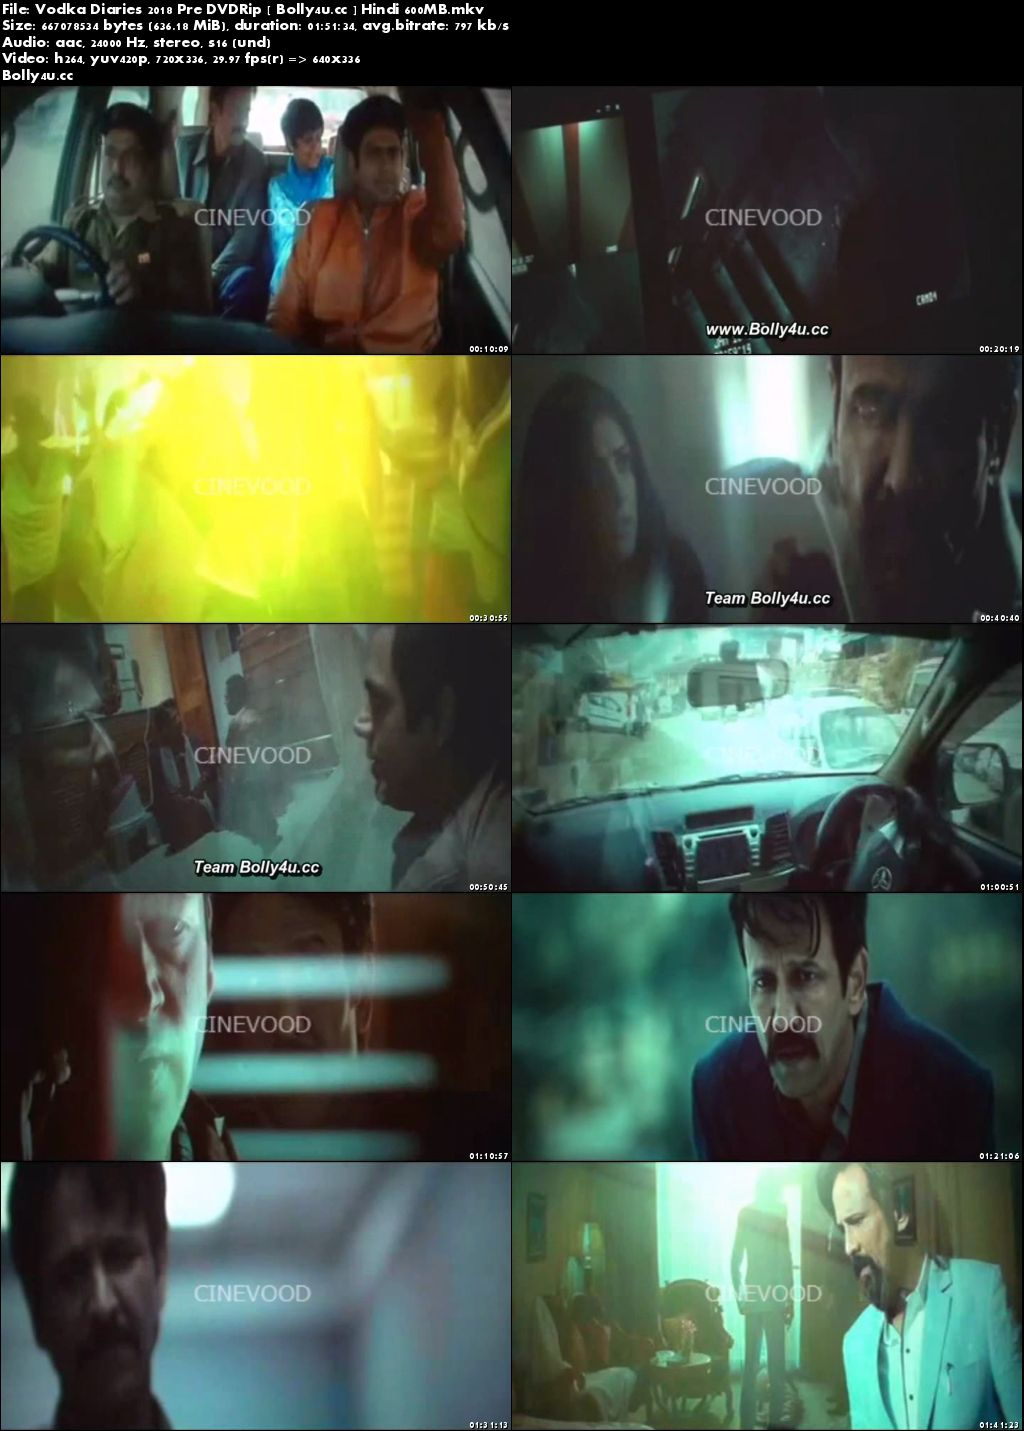 Vodka Diaries 2018 Pre DVDRip 350Mb Full Hindi Movie Download 480p